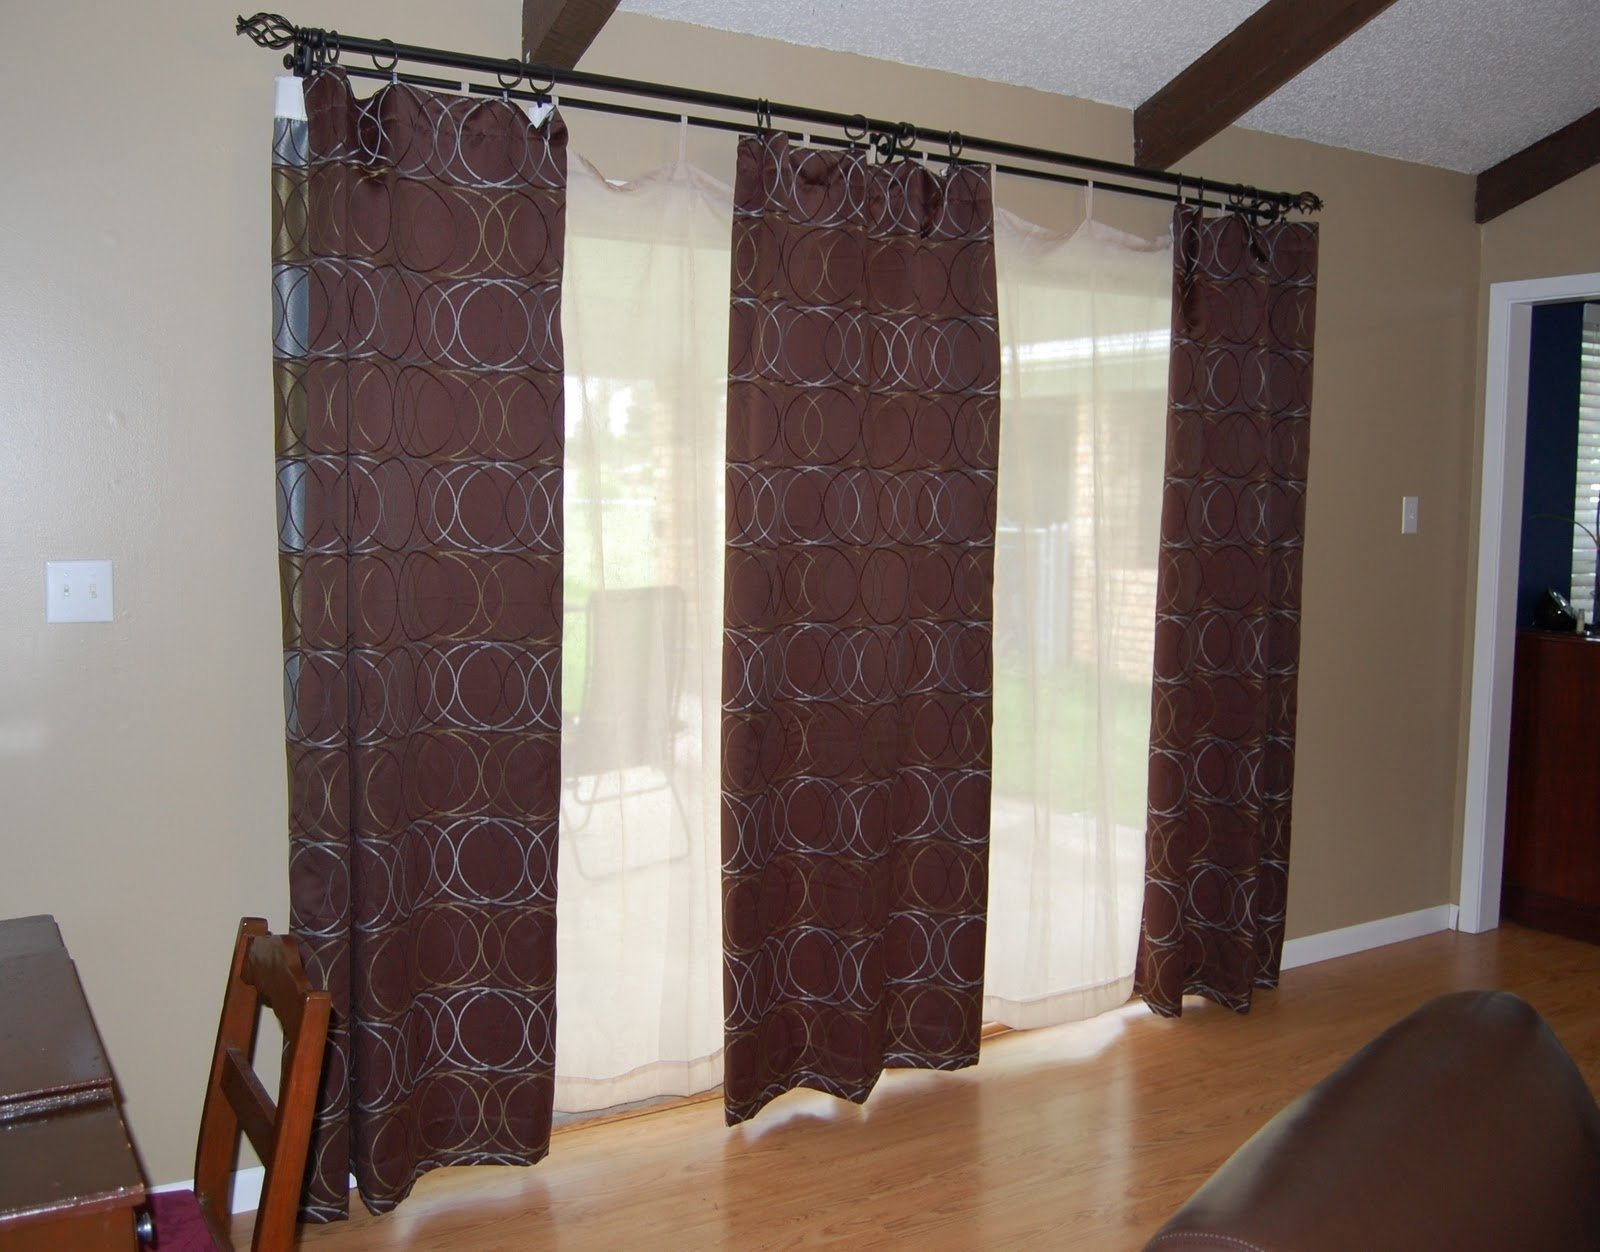 10 Stylish Curtain Ideas For French Doors sliding patio door curtains ideas charter home ideas 2020